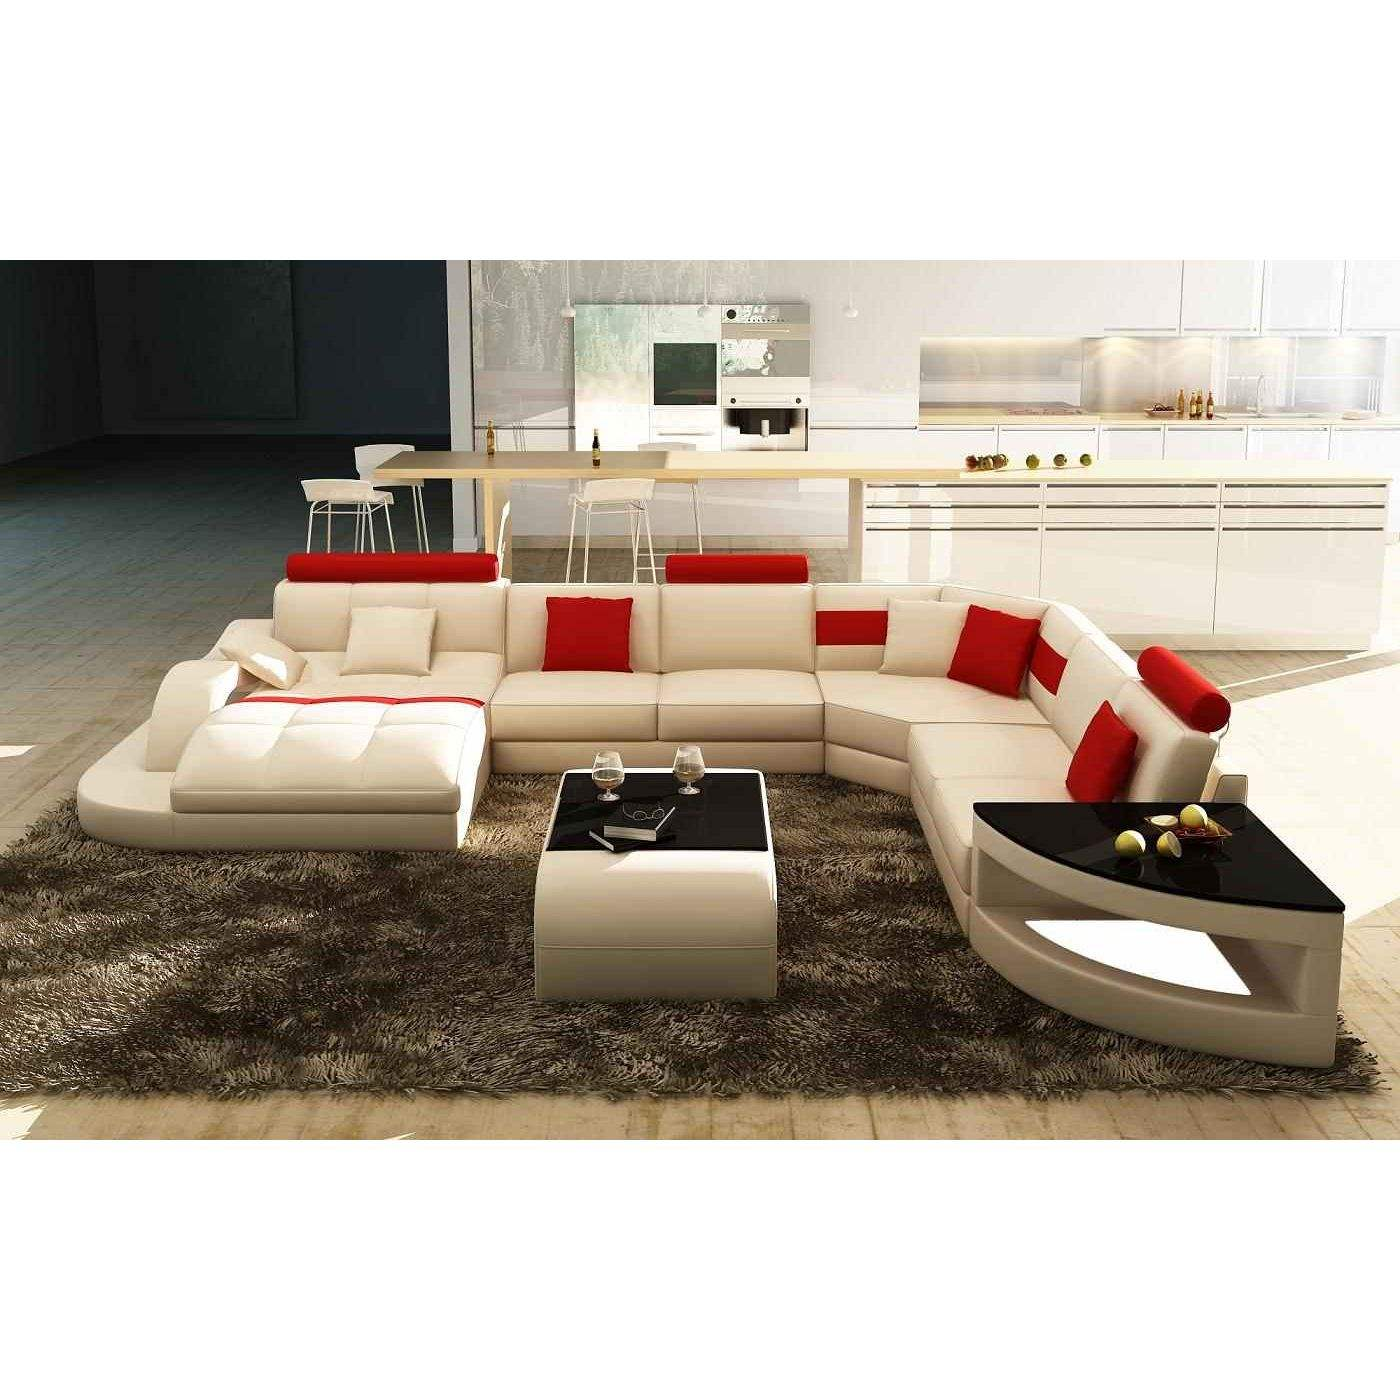 deco in paris canape d angle design panoramique blanc et rouge istanbul pano blanc rouge. Black Bedroom Furniture Sets. Home Design Ideas